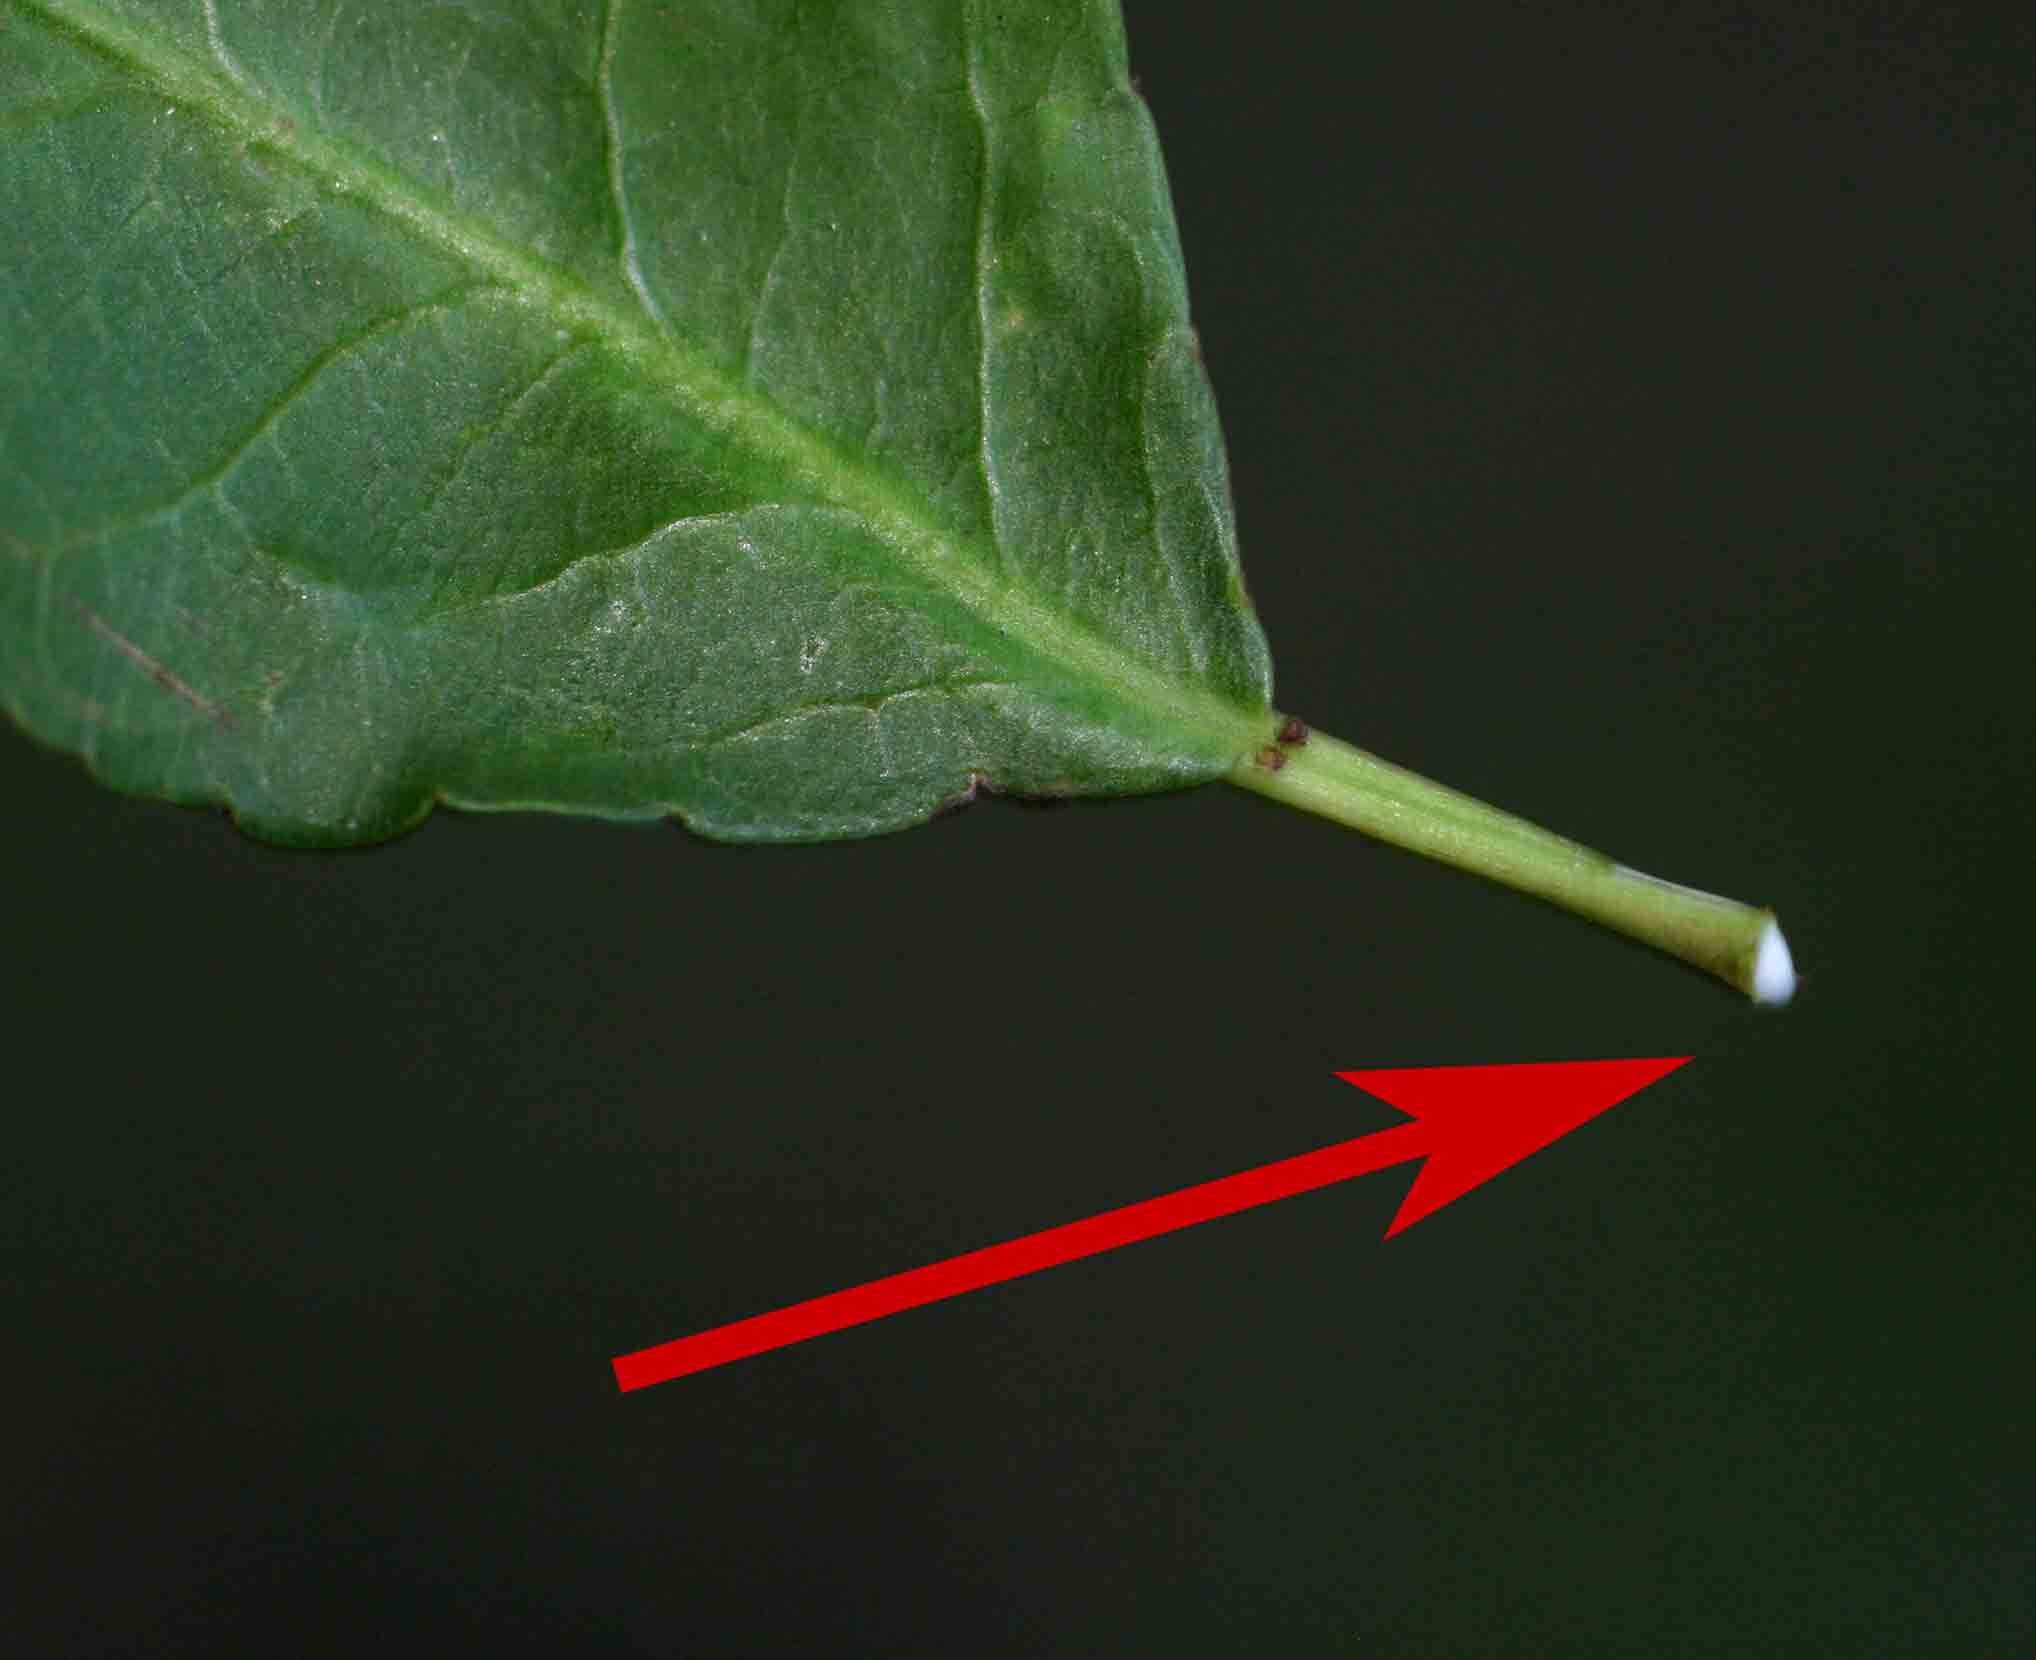 Milky latex emerging from a leaf of Spirostachys africana.